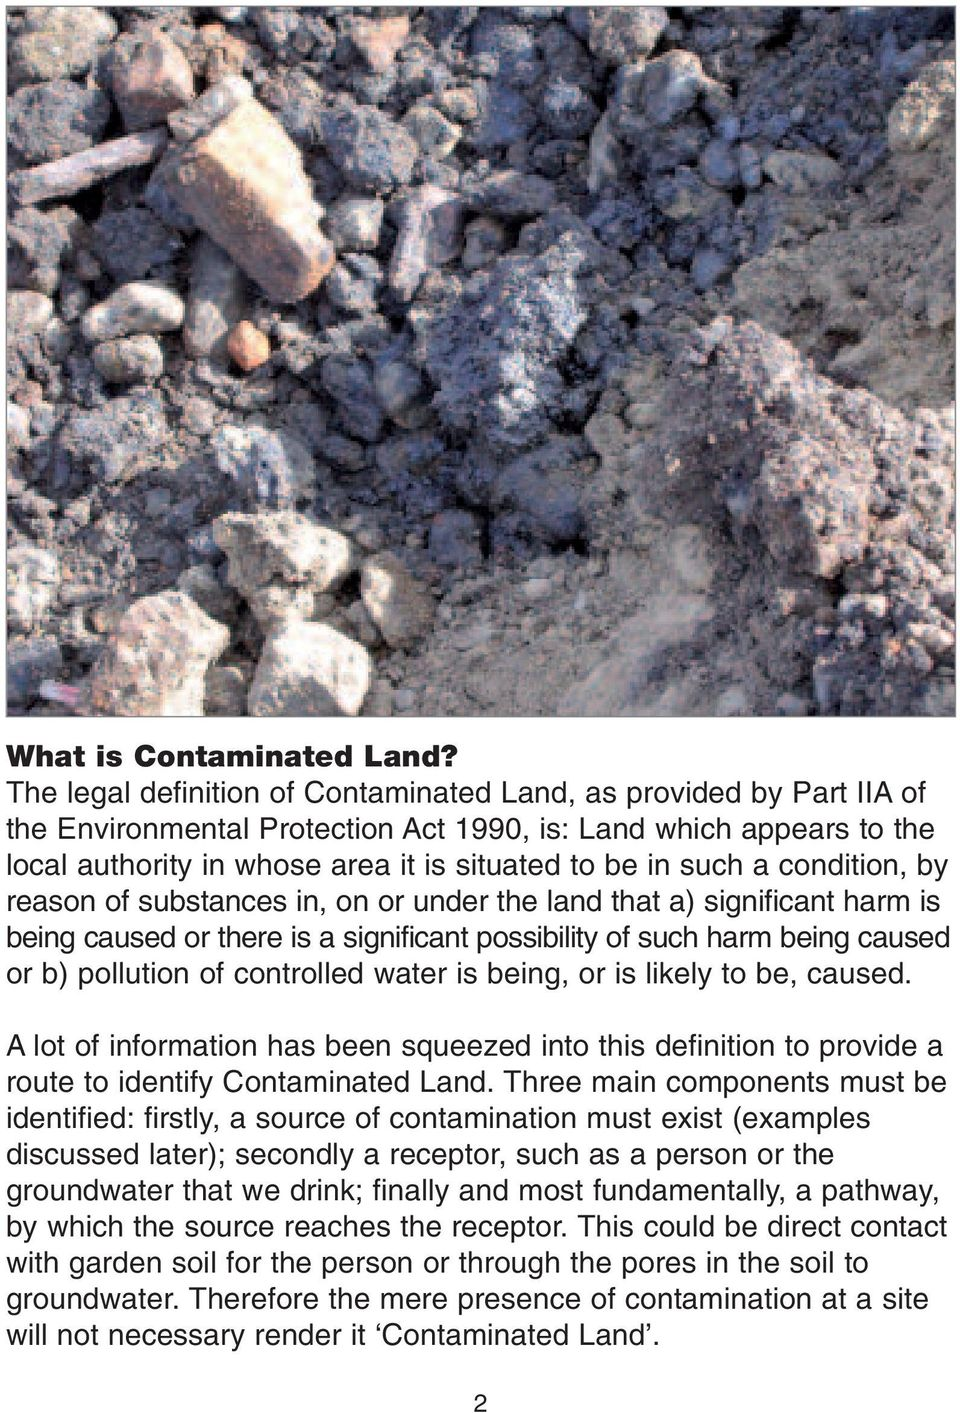 condition, by reason of substances in, on or under the land that a) significant harm is being caused or there is a significant possibility of such harm being caused or b) pollution of controlled